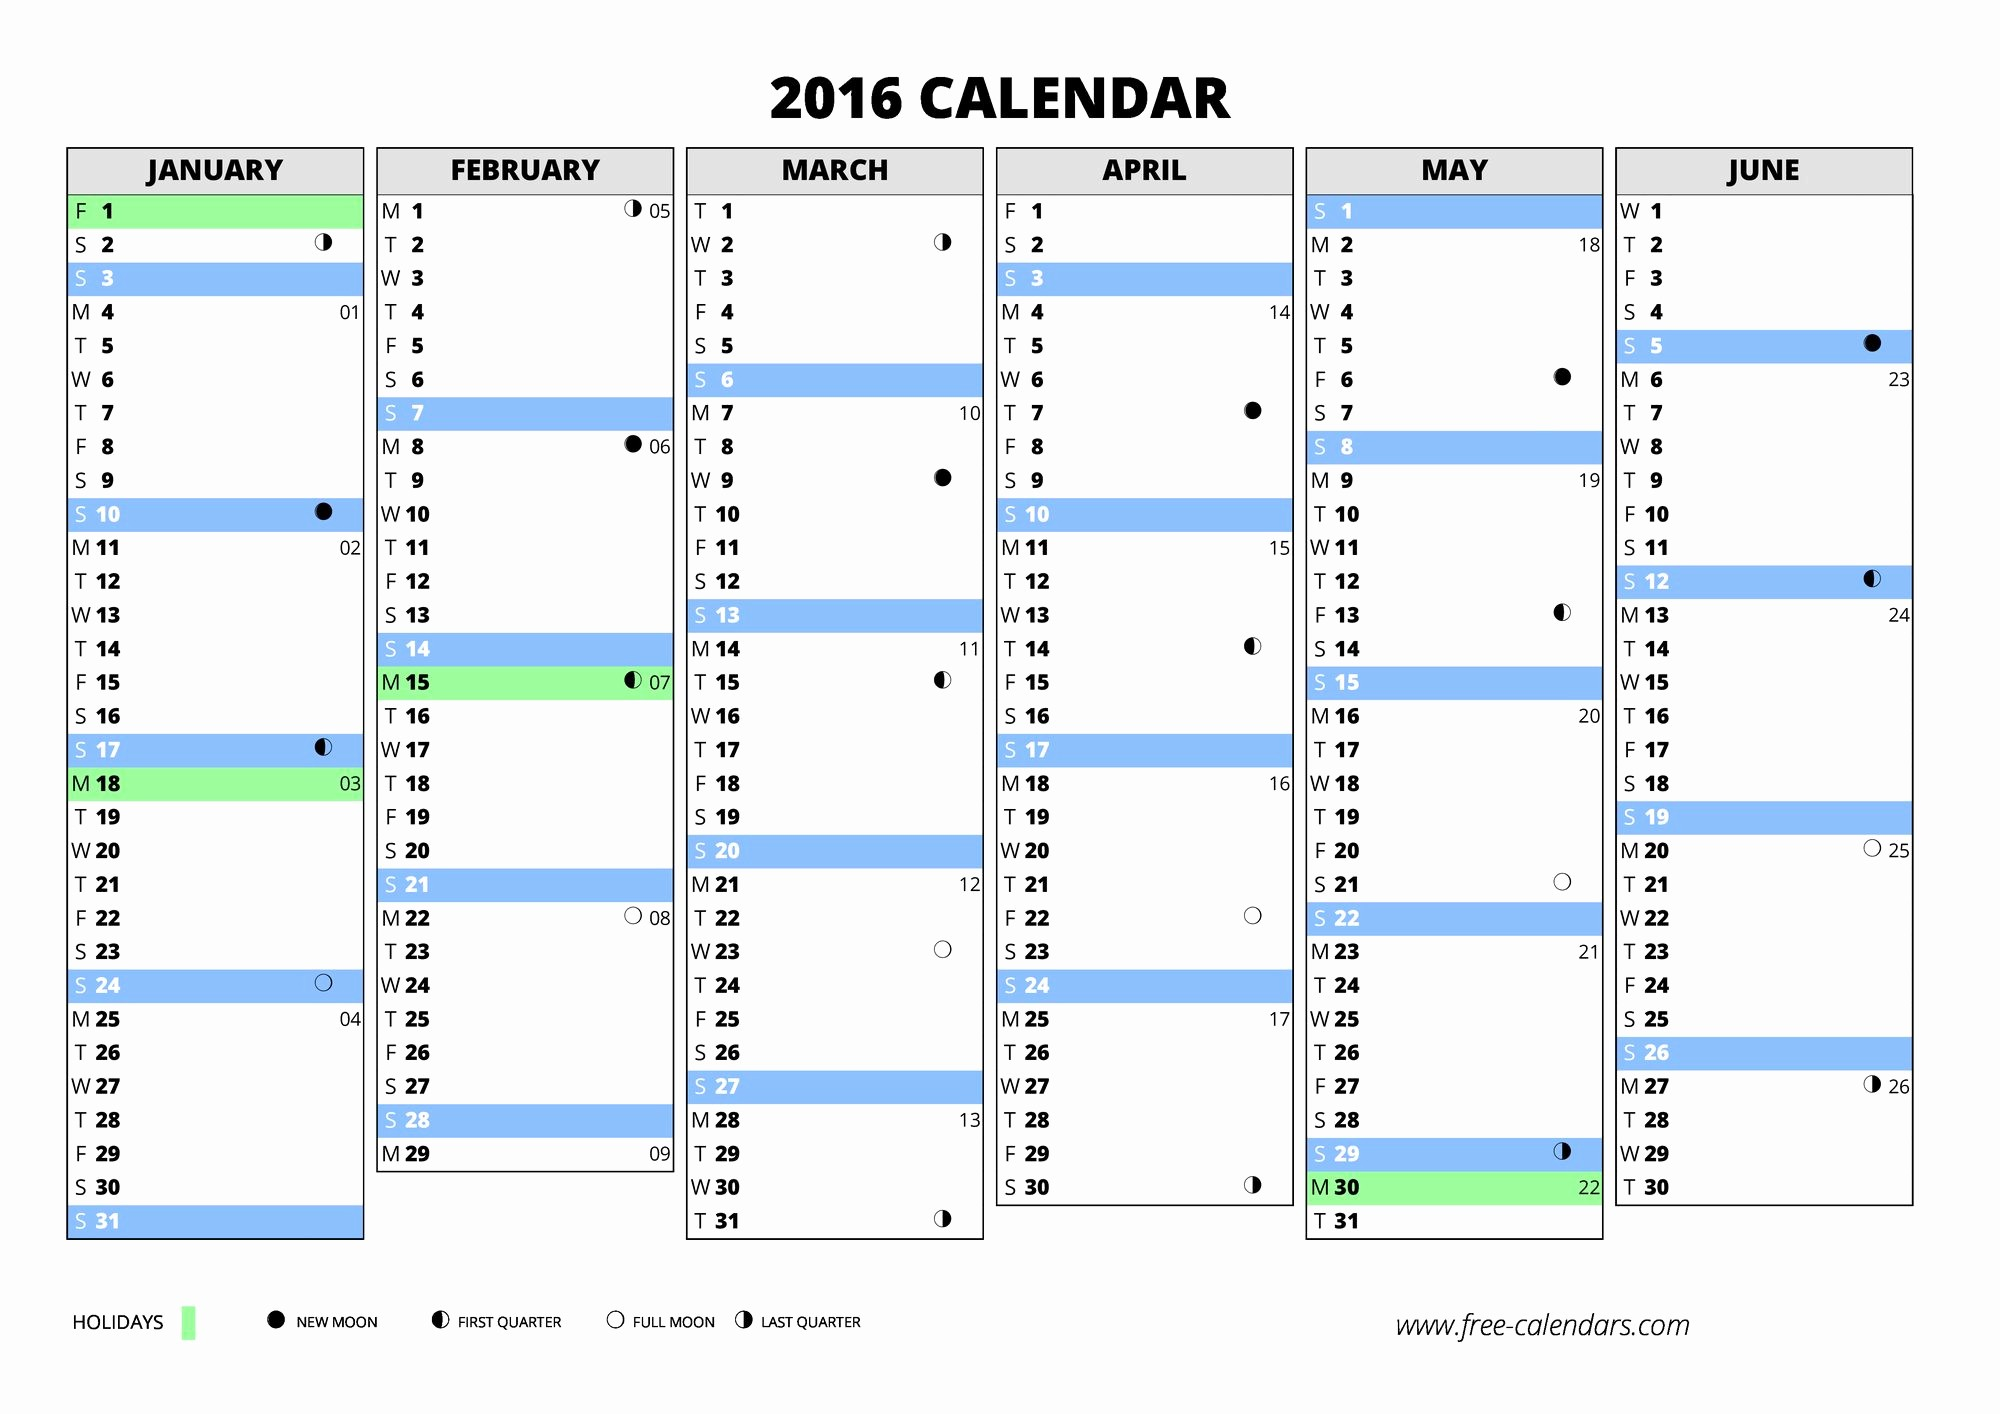 2016 Calendar Excel with Holidays Luxury 2016 Calendar ≡ Free Calendars